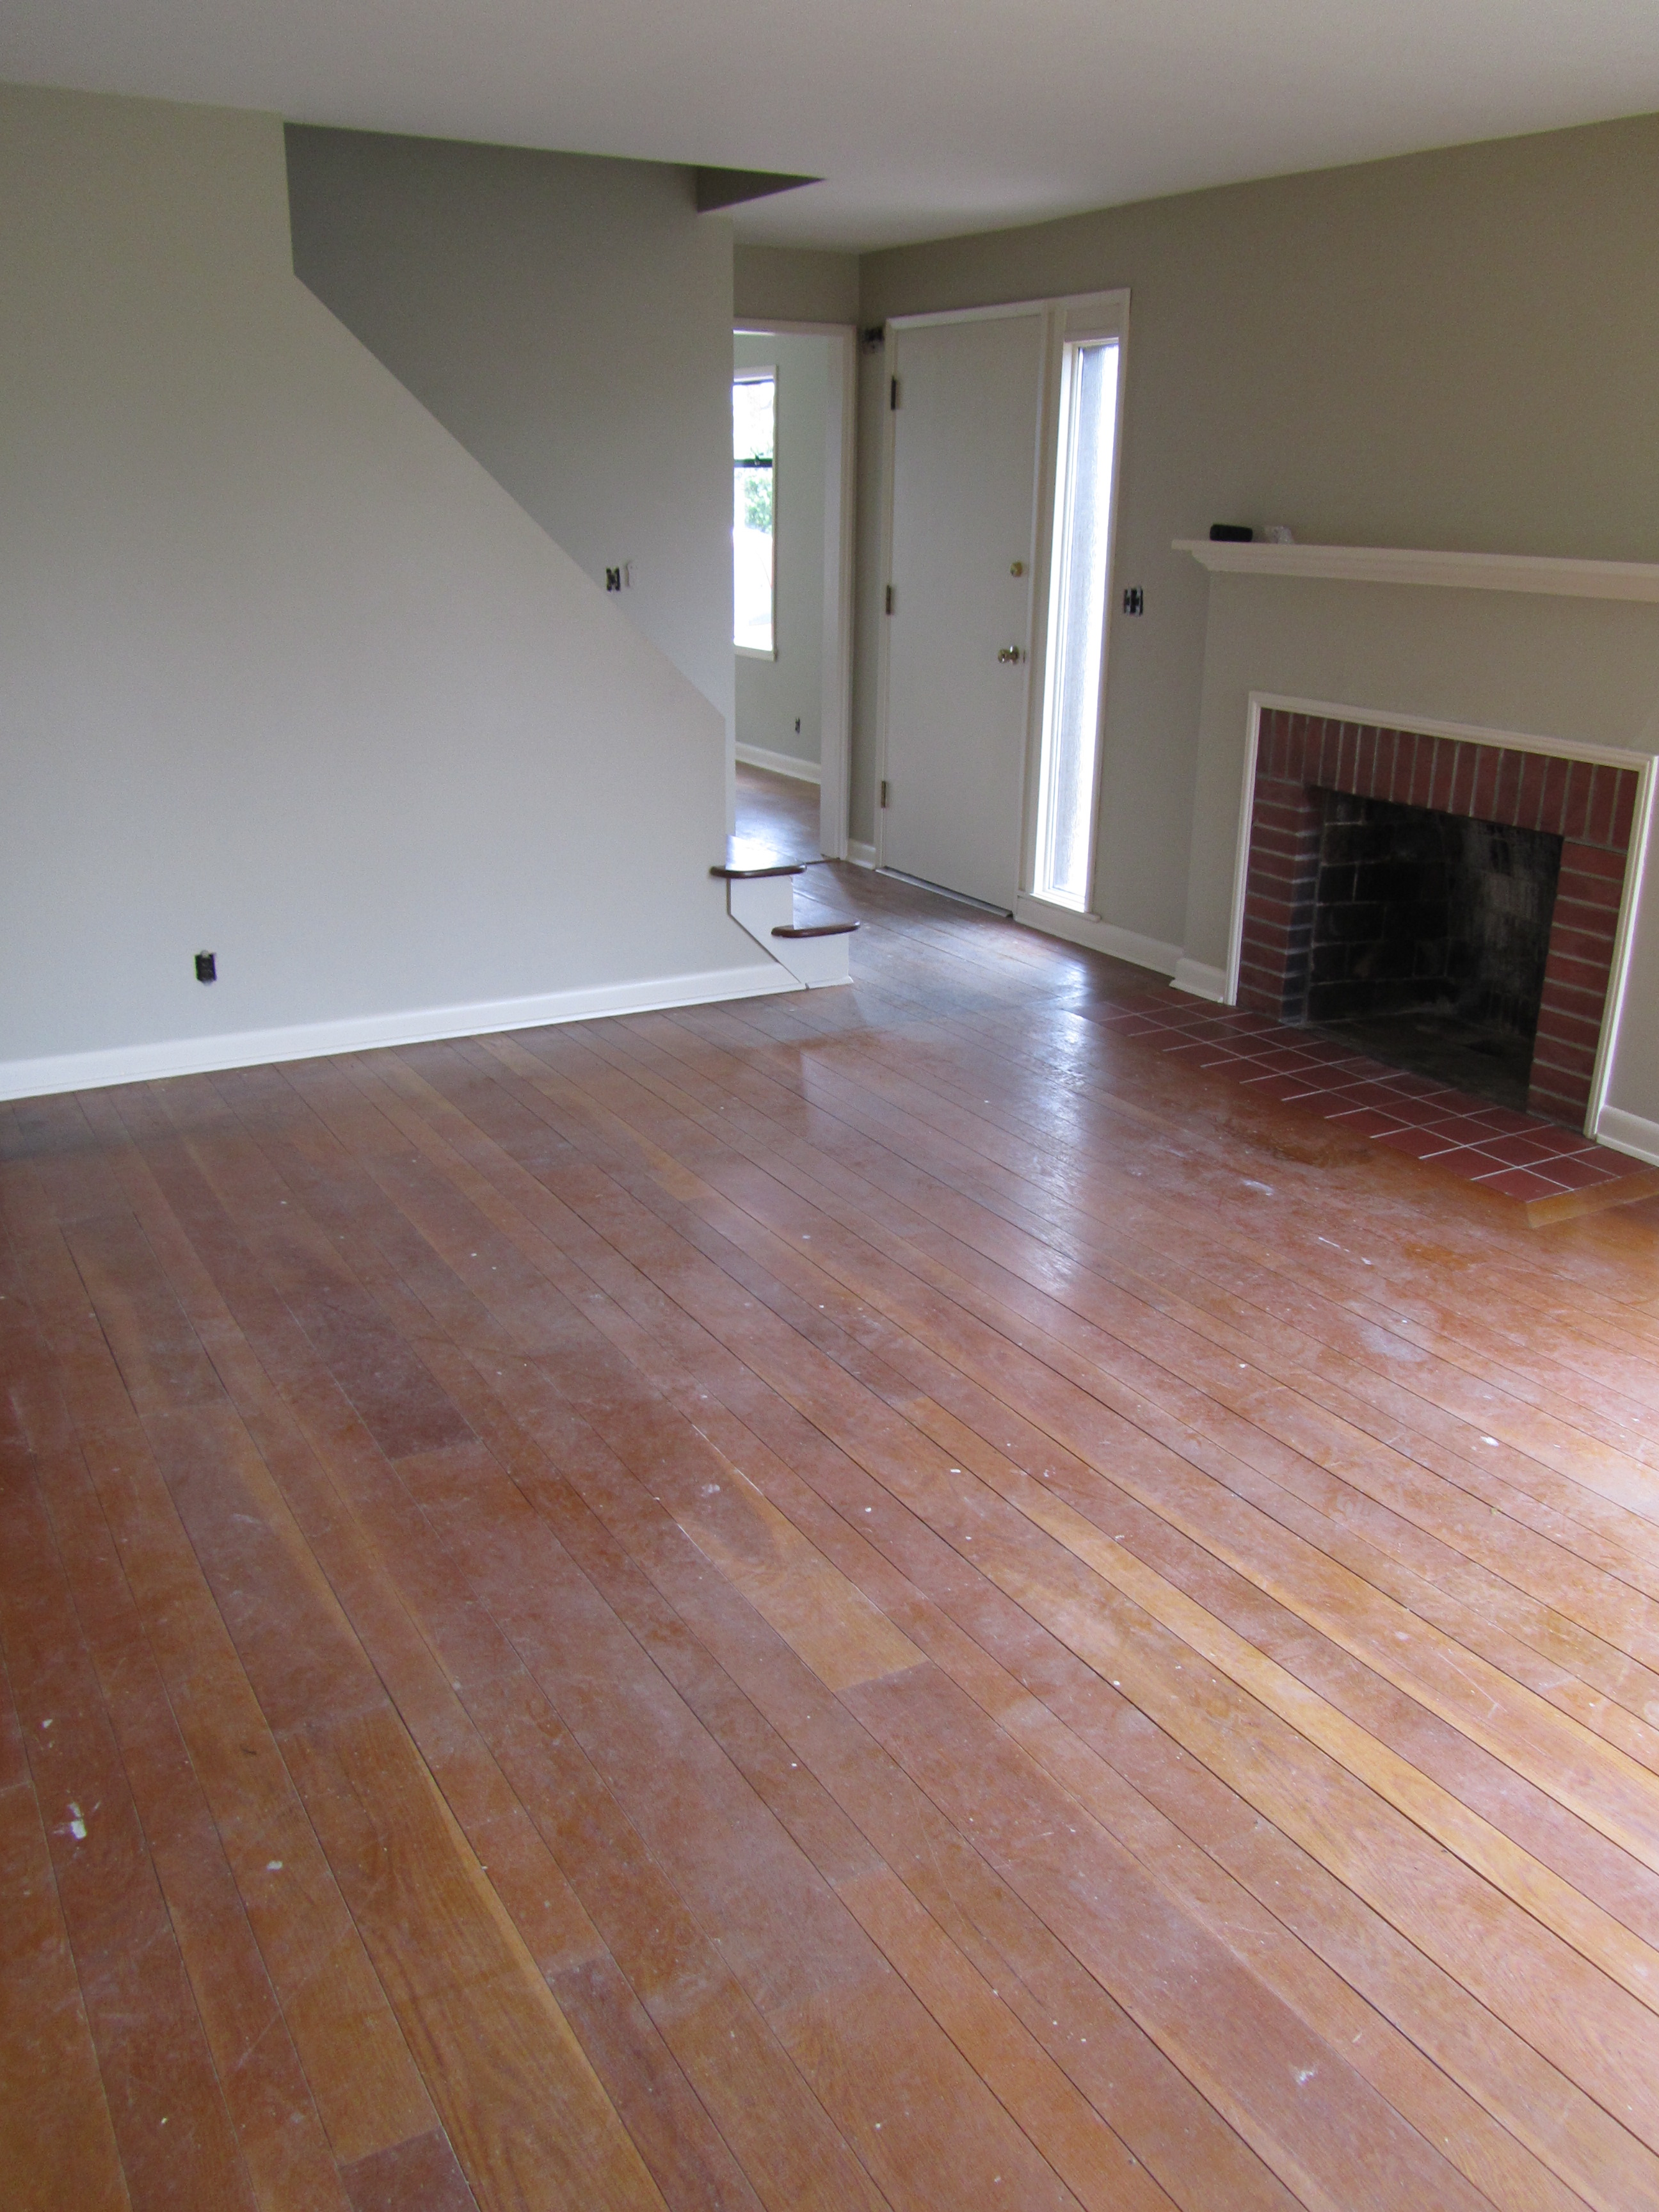 Maple leaf refinish seattle general contractor and for Hardwood floor contractors